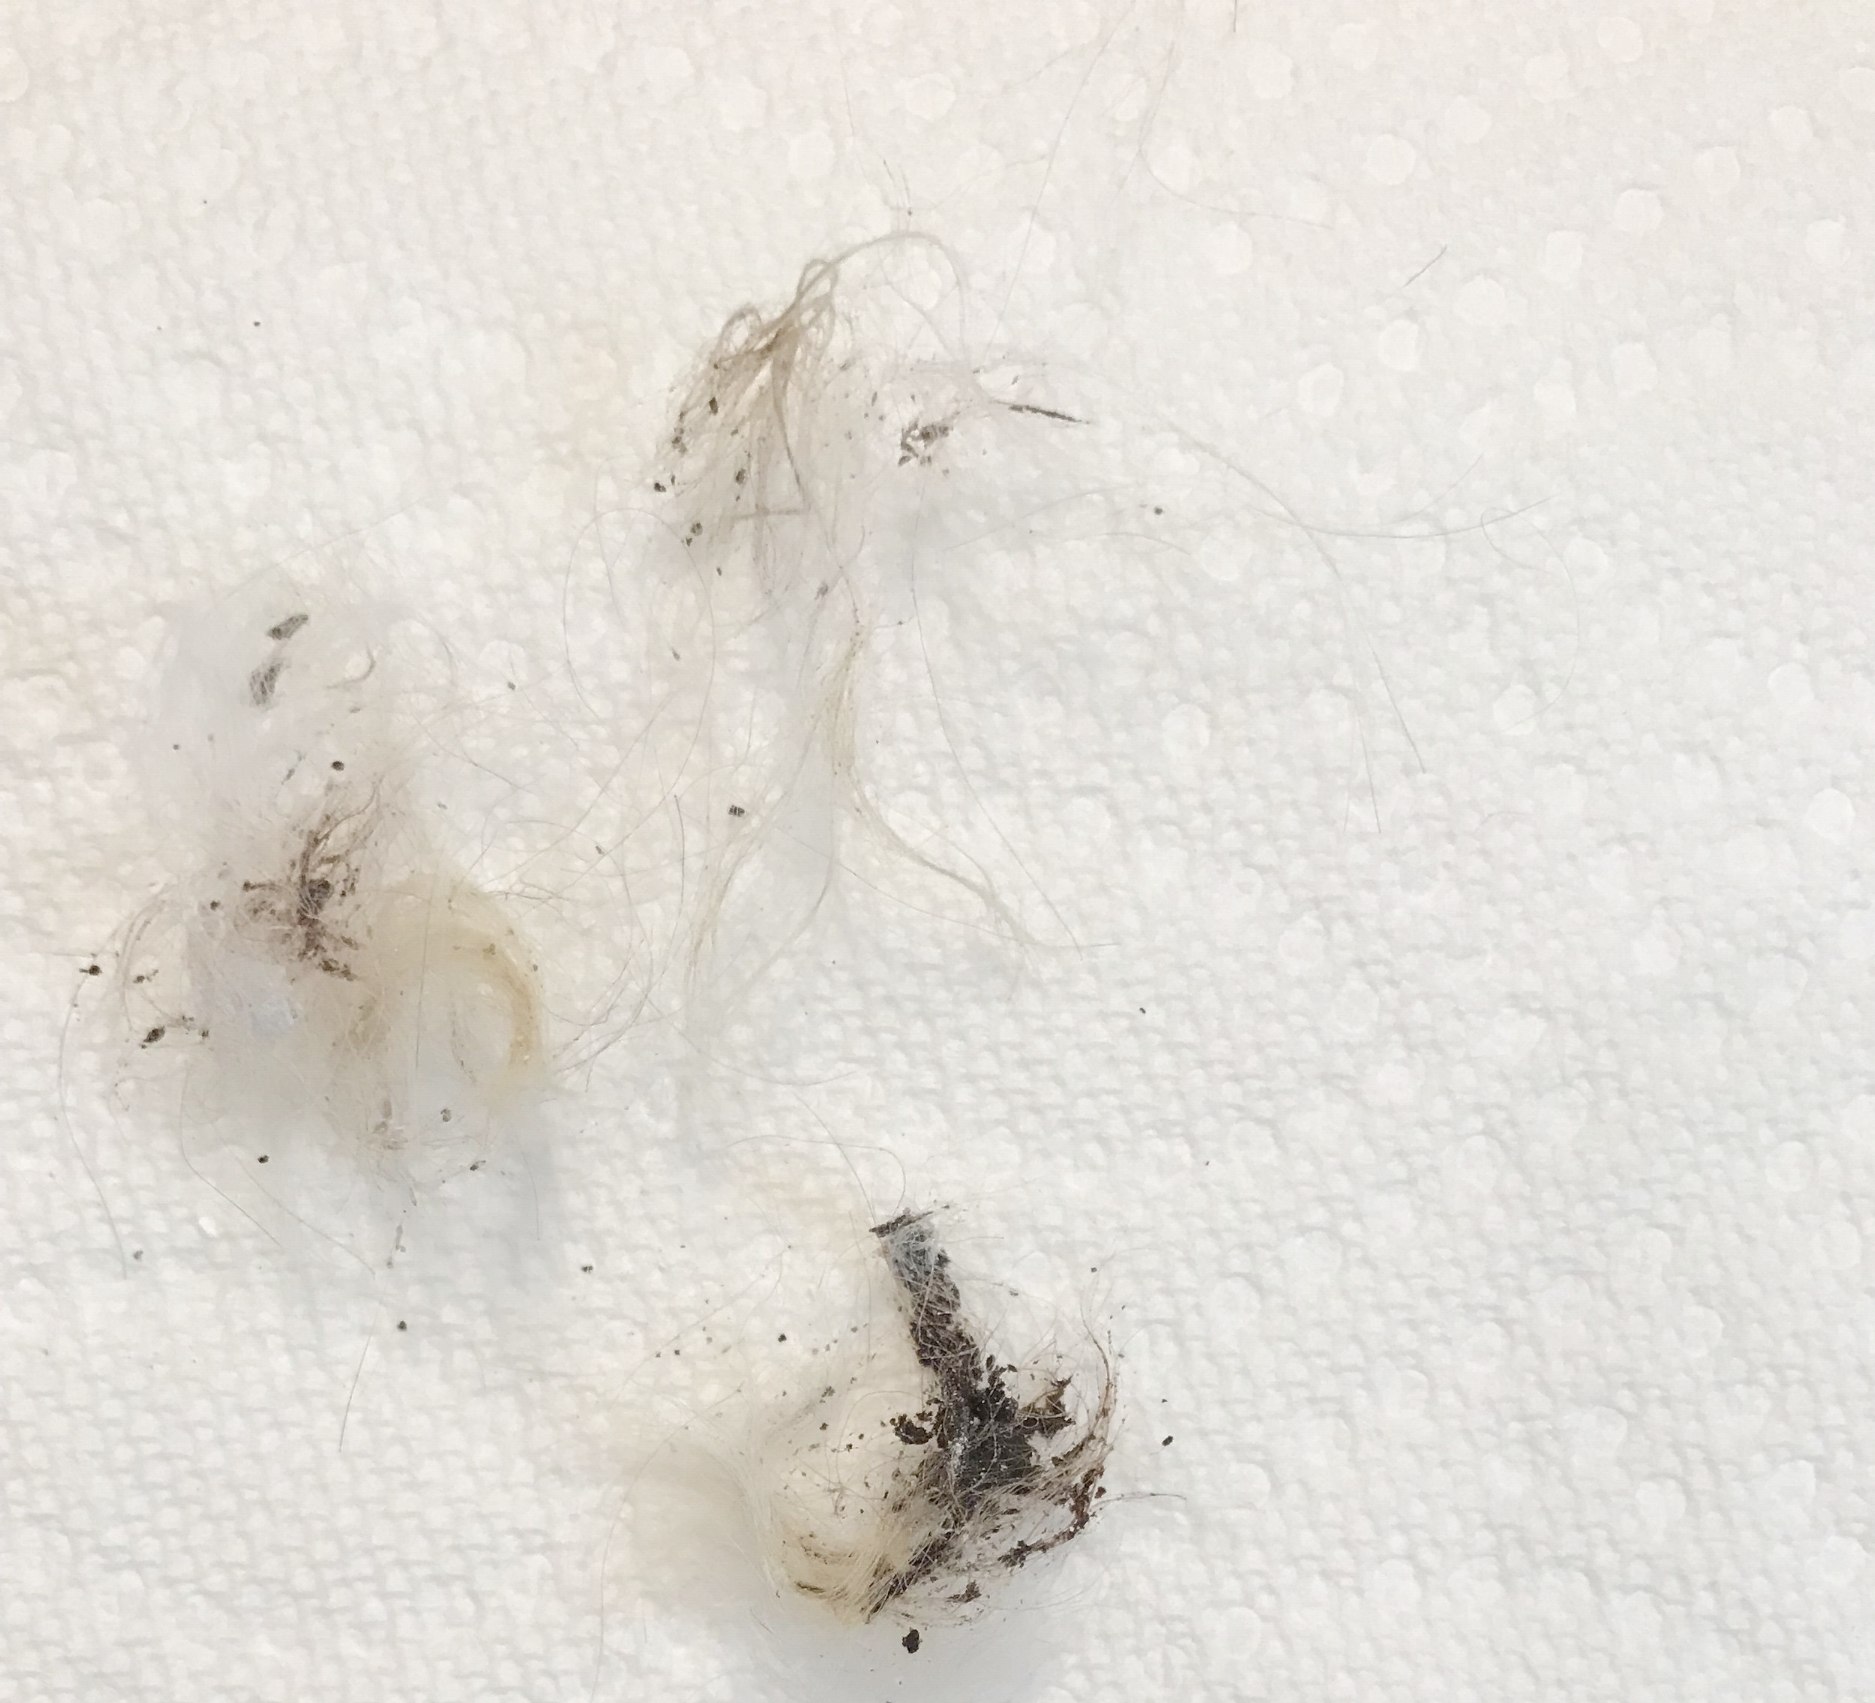 Plucked (removed) ear hair. - The darker and thicker piece was deeper within the ear canal. After removal, I was able to effectively clean the ears!